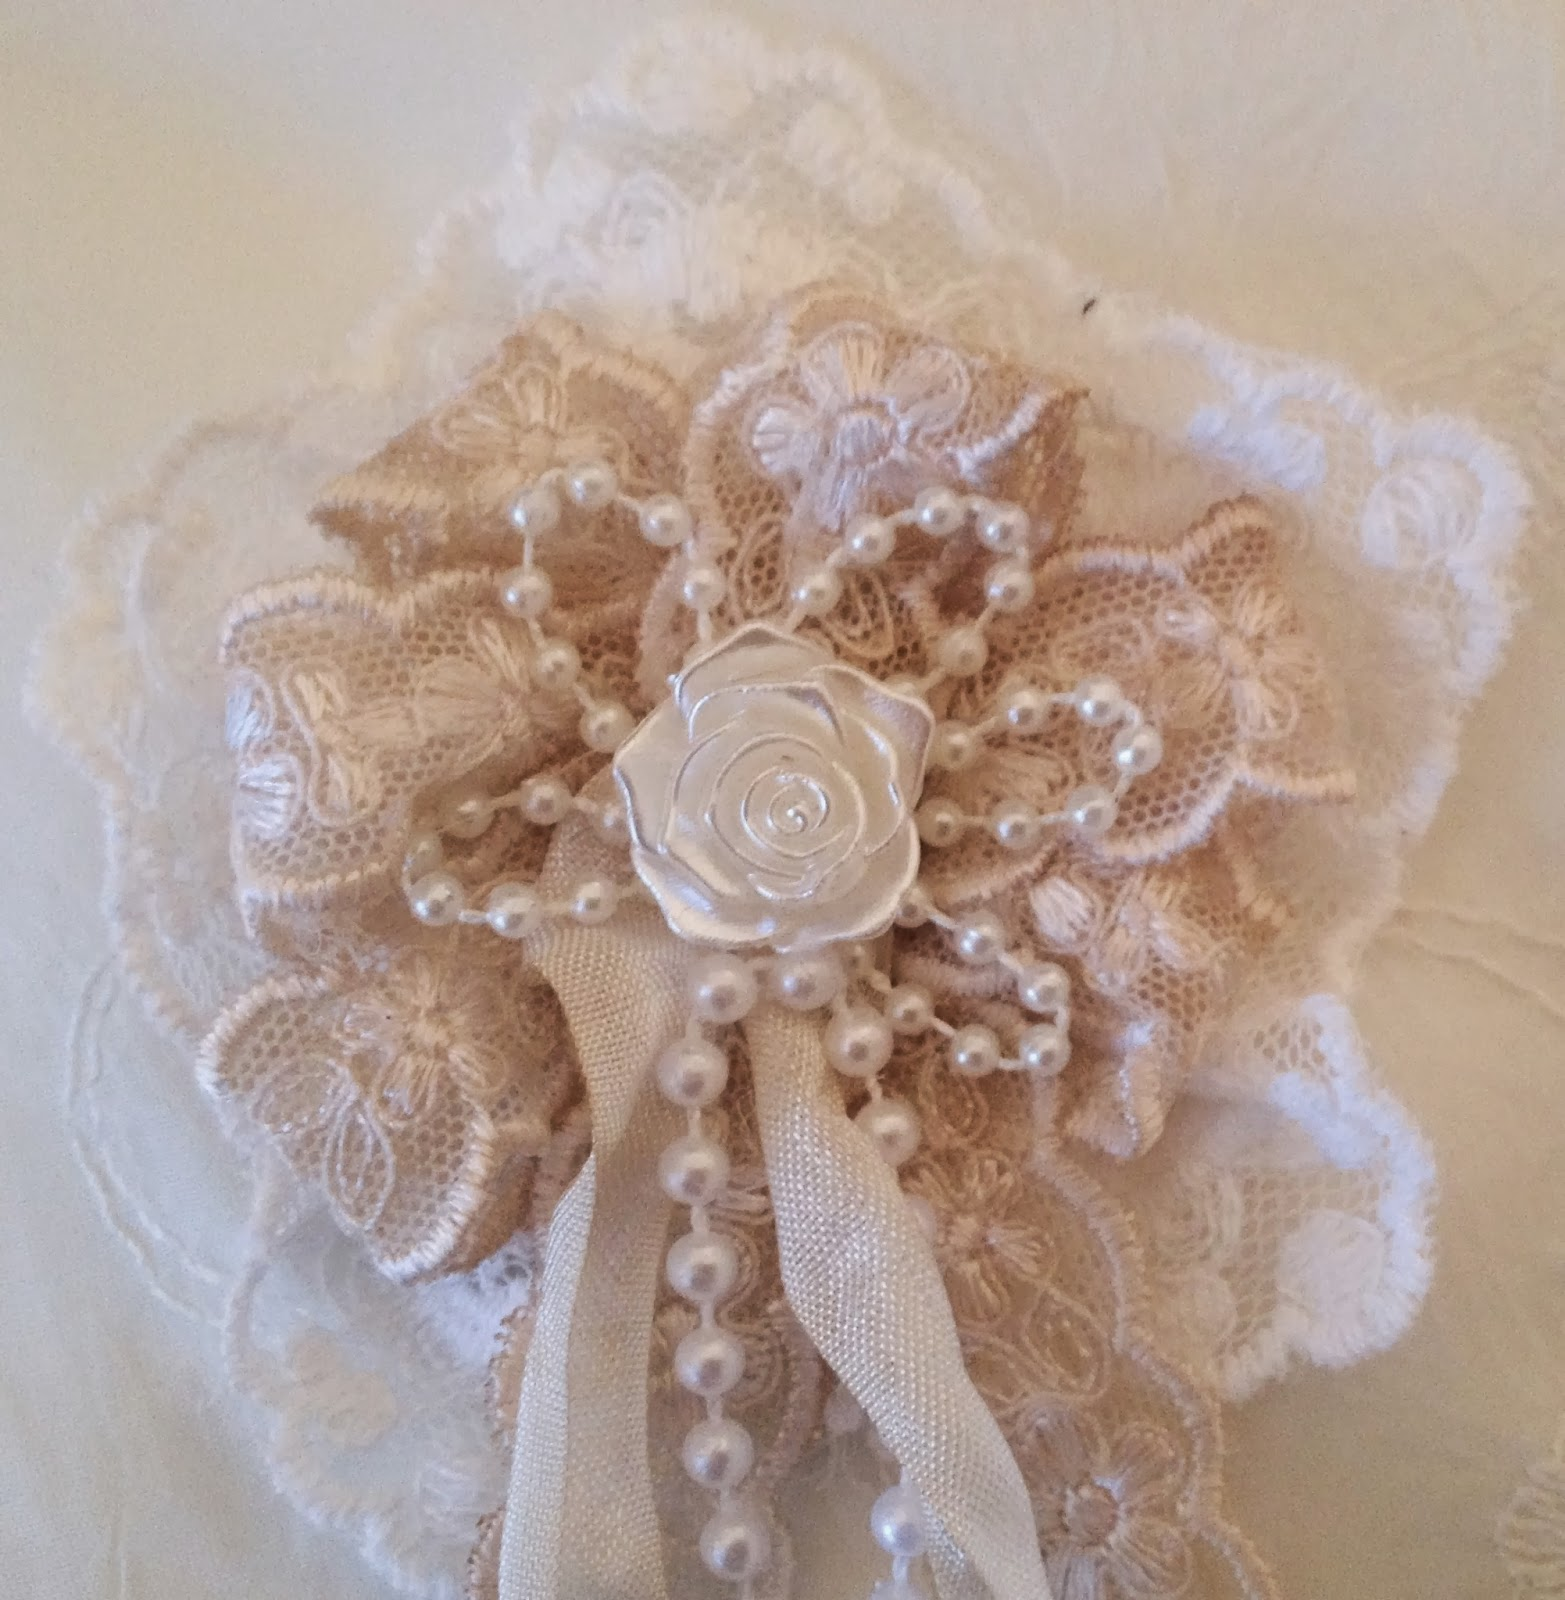 Shabby chic crafts to make - This Flower Is Fast And Really Easy To Make